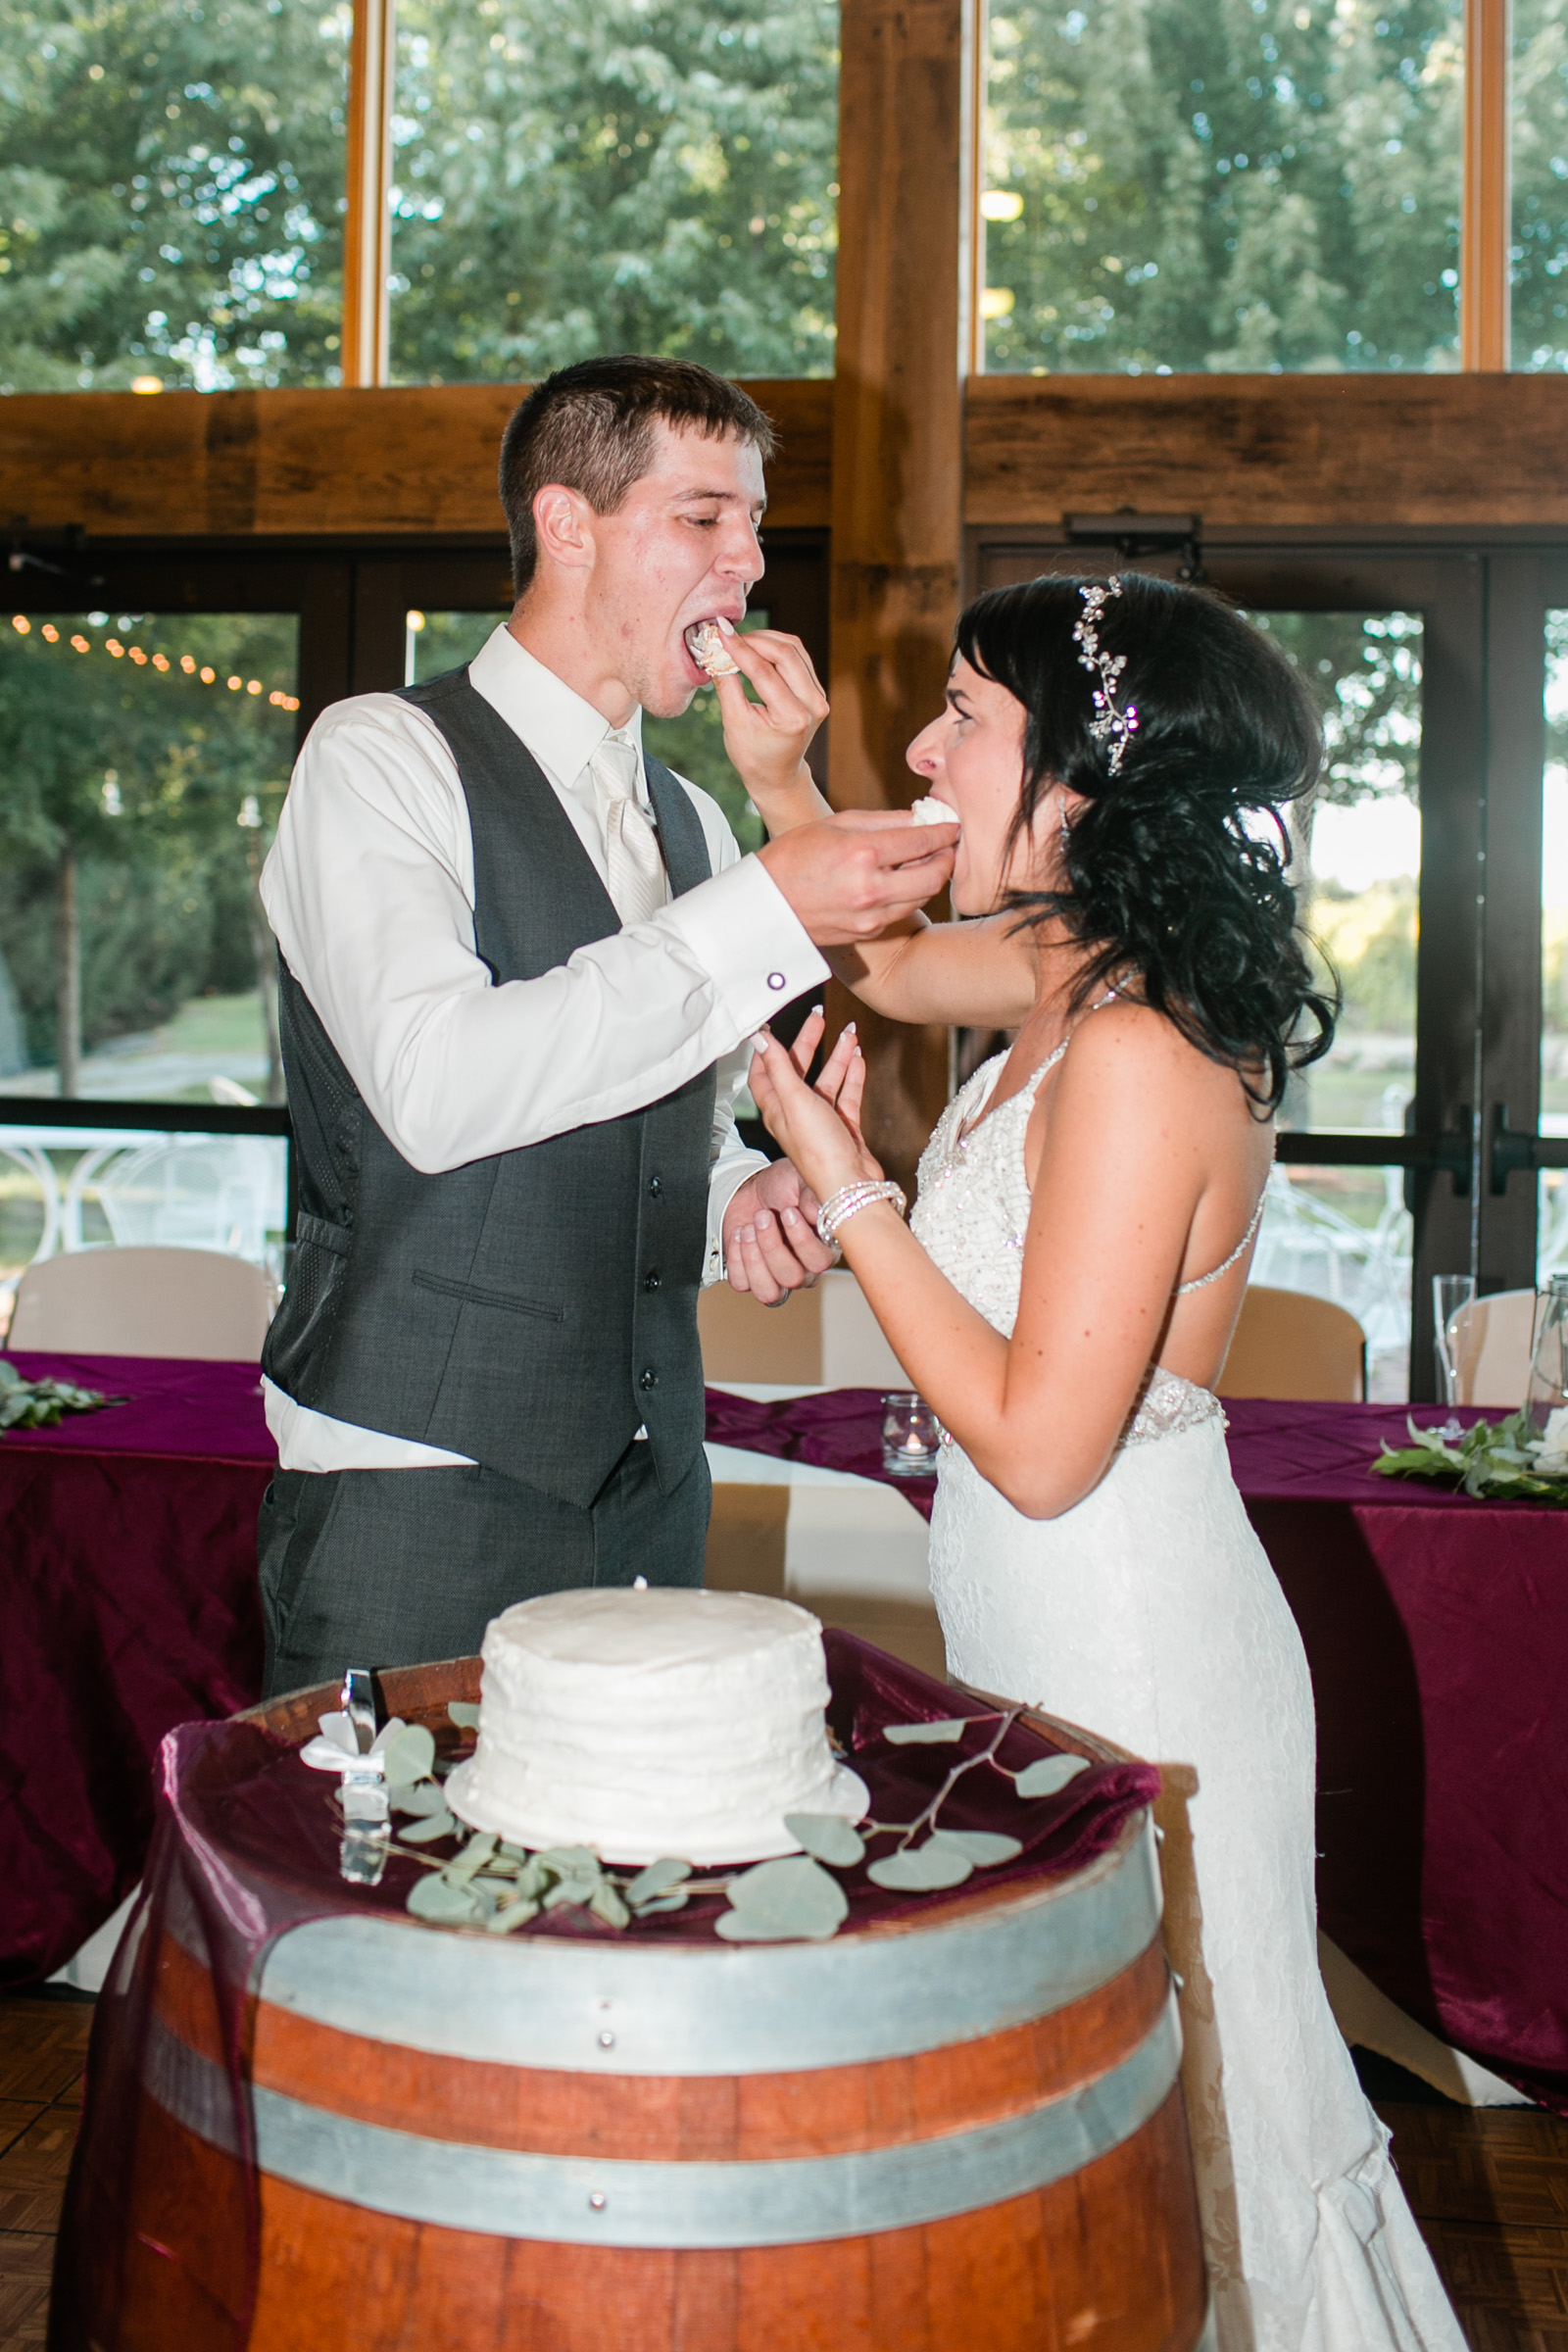 cake_smash_tradition_Iowa_wedding